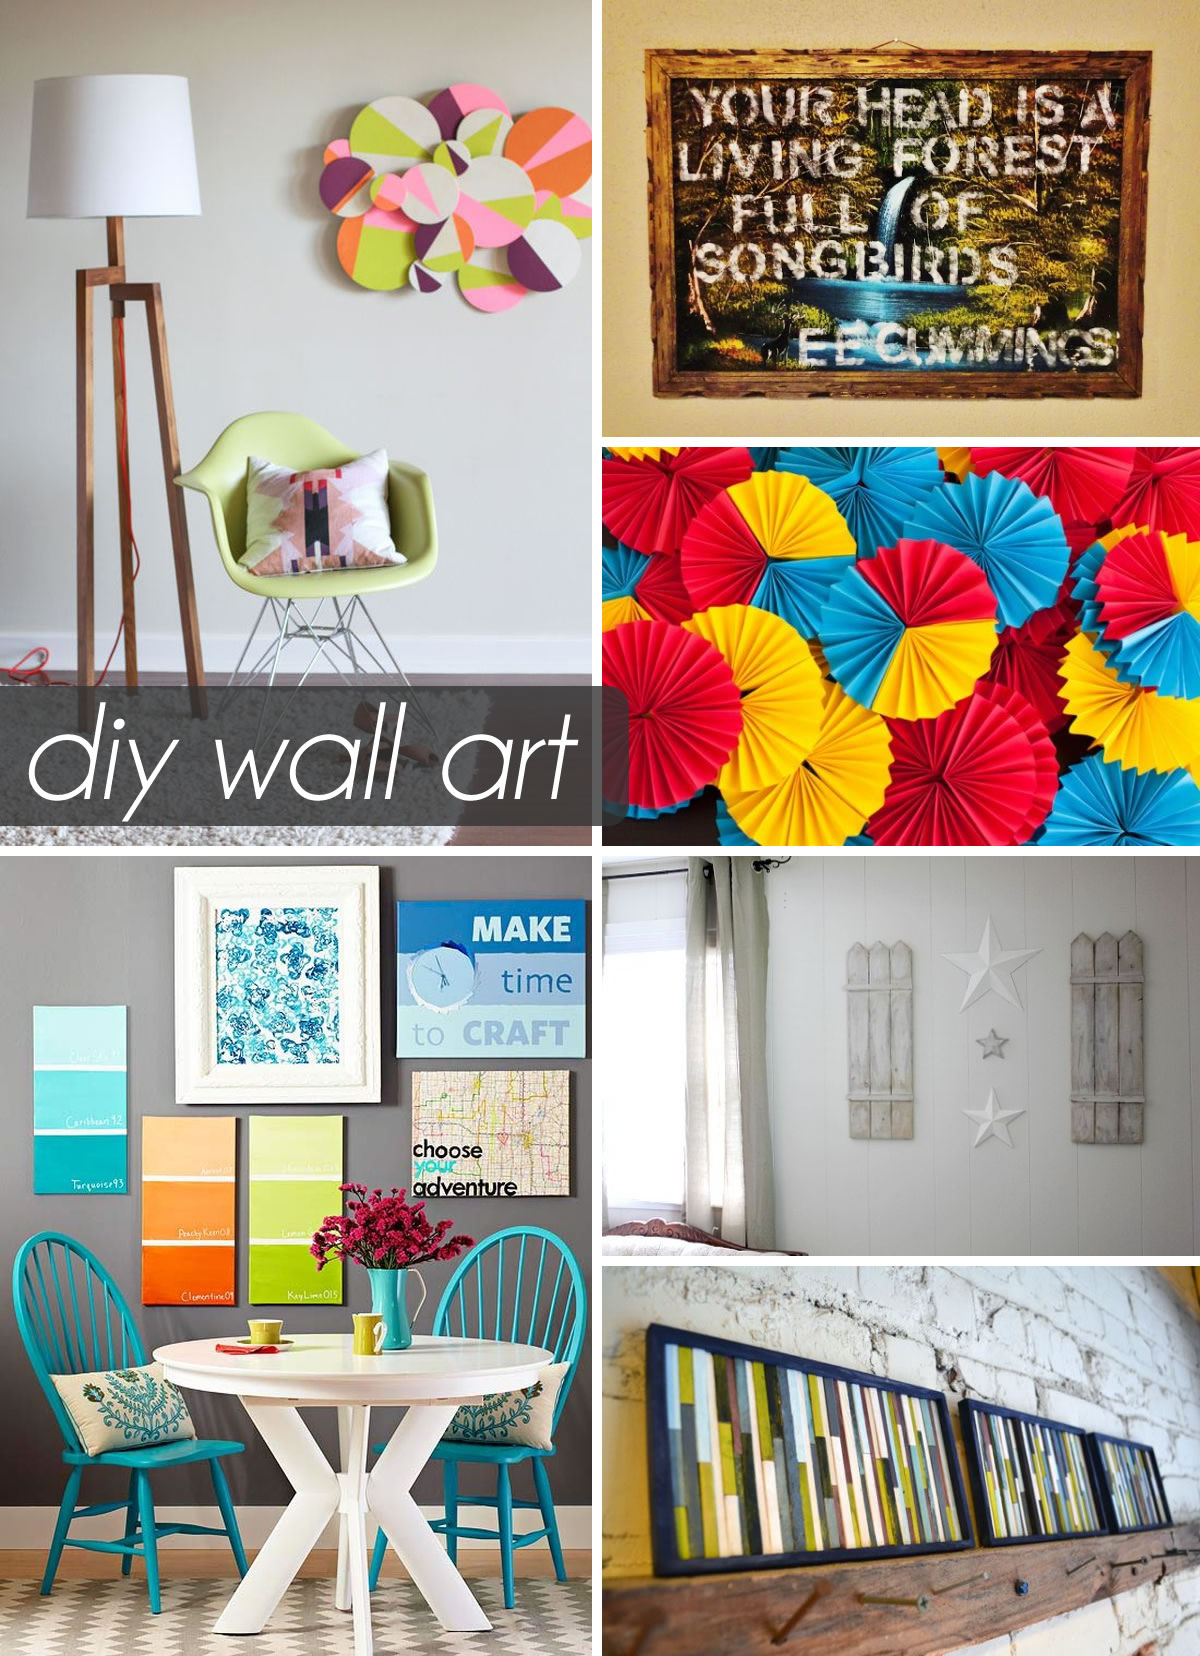 50 beautiful diy wall art ideas for your home - Diy Home Wall Decor Ideas